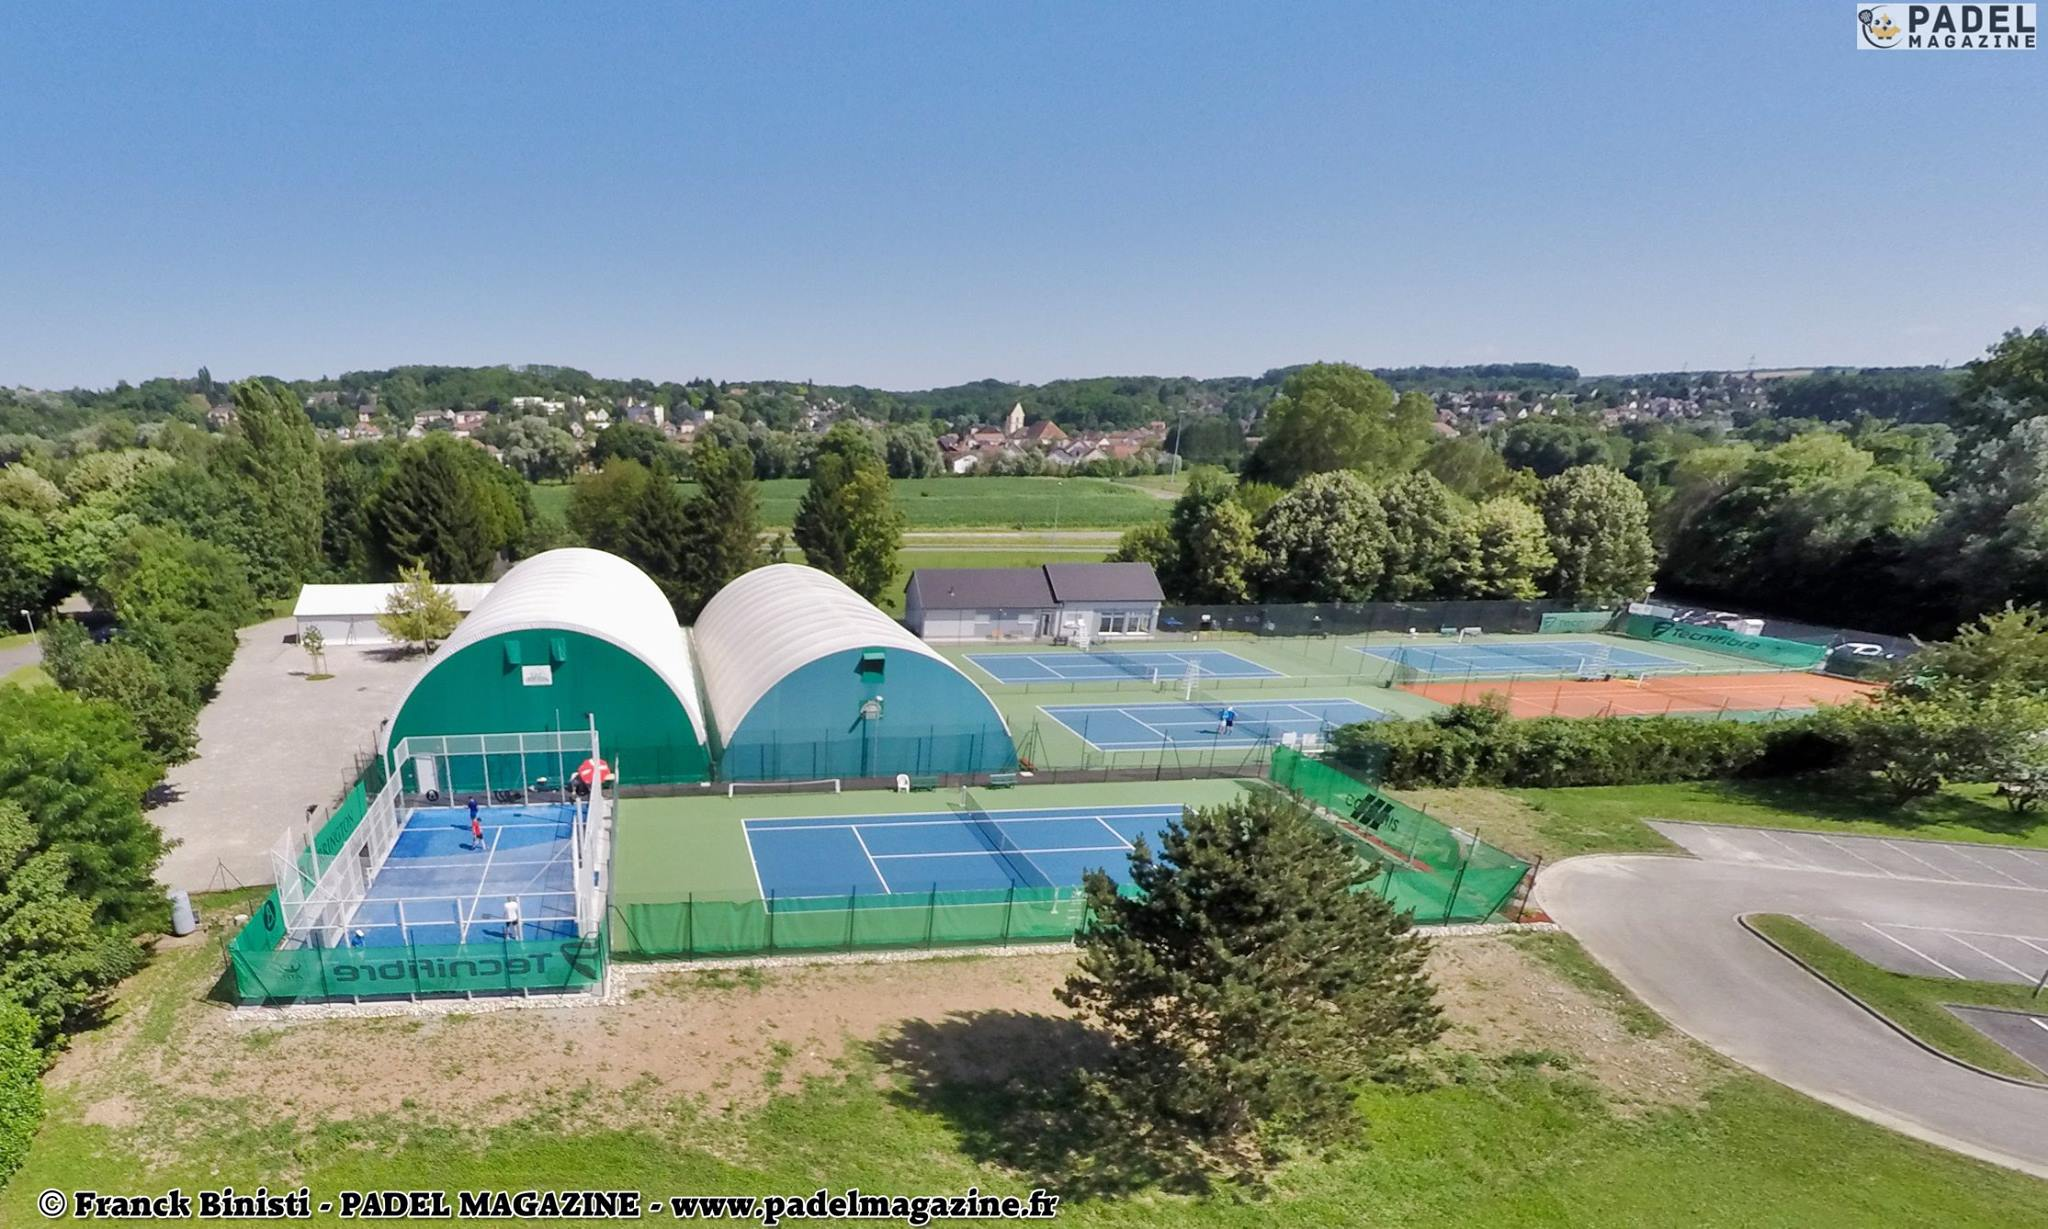 Tennis club de Brunstatt padel